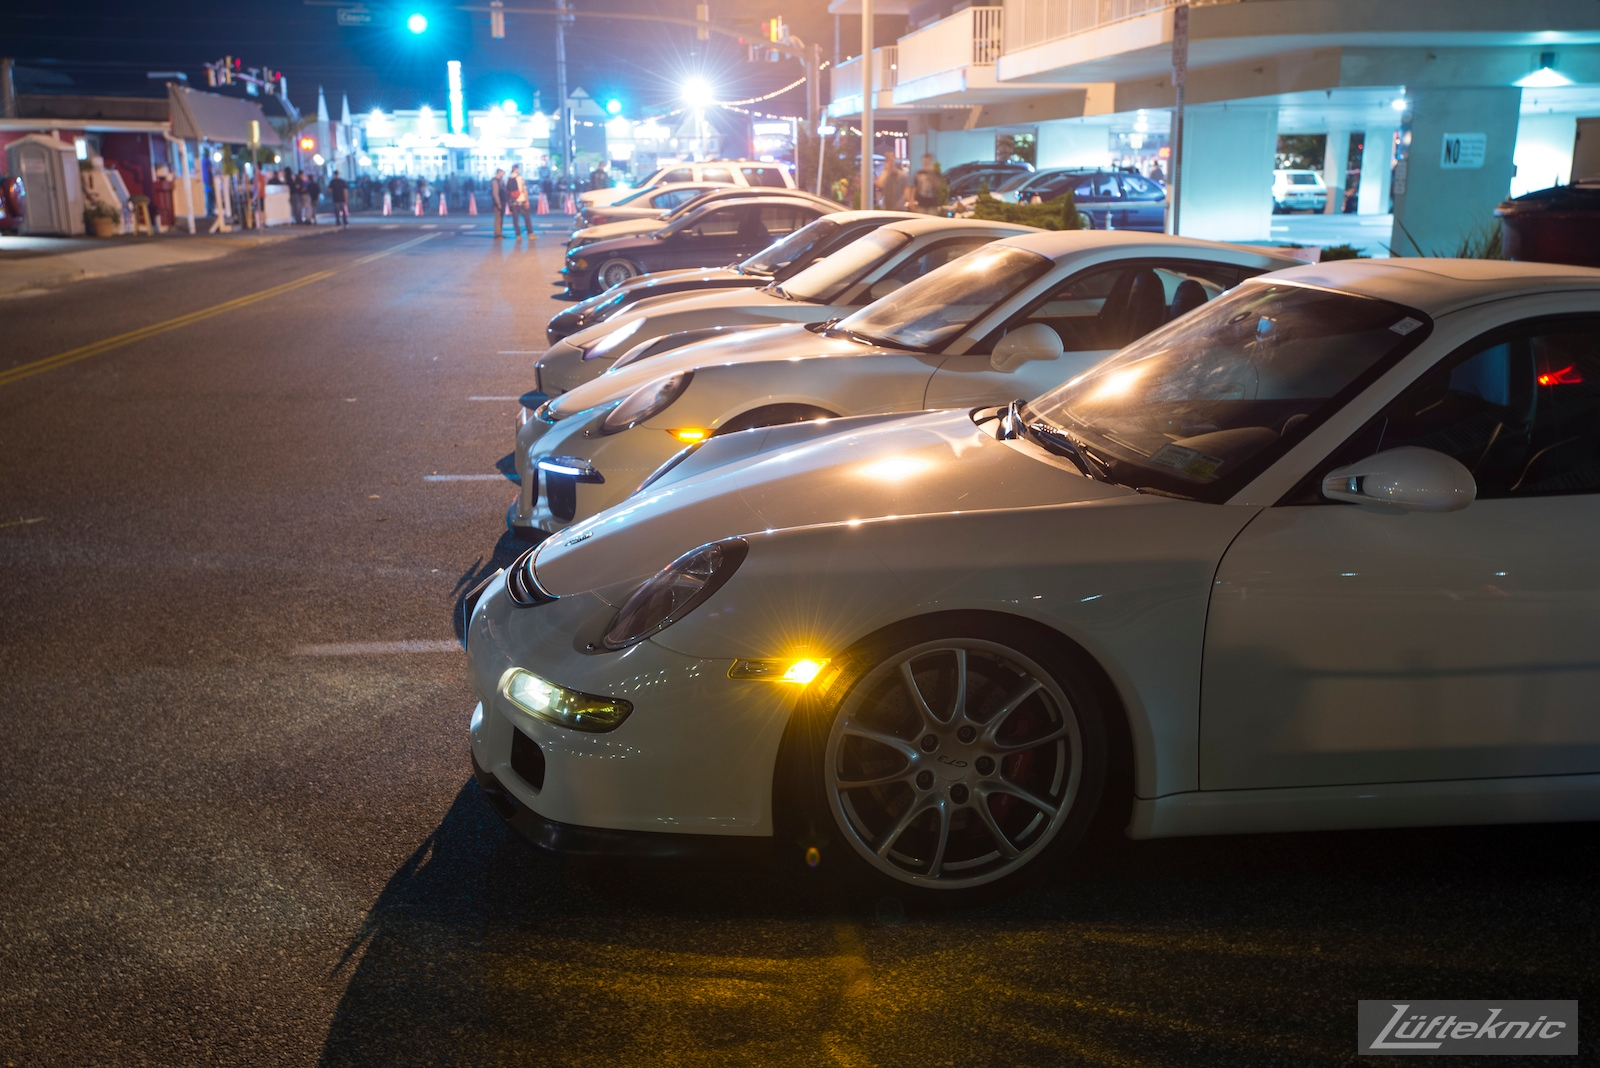 A misty nighttime picture showing a 997 GT3 with 991 and 996 type gt3 cars with their lights on